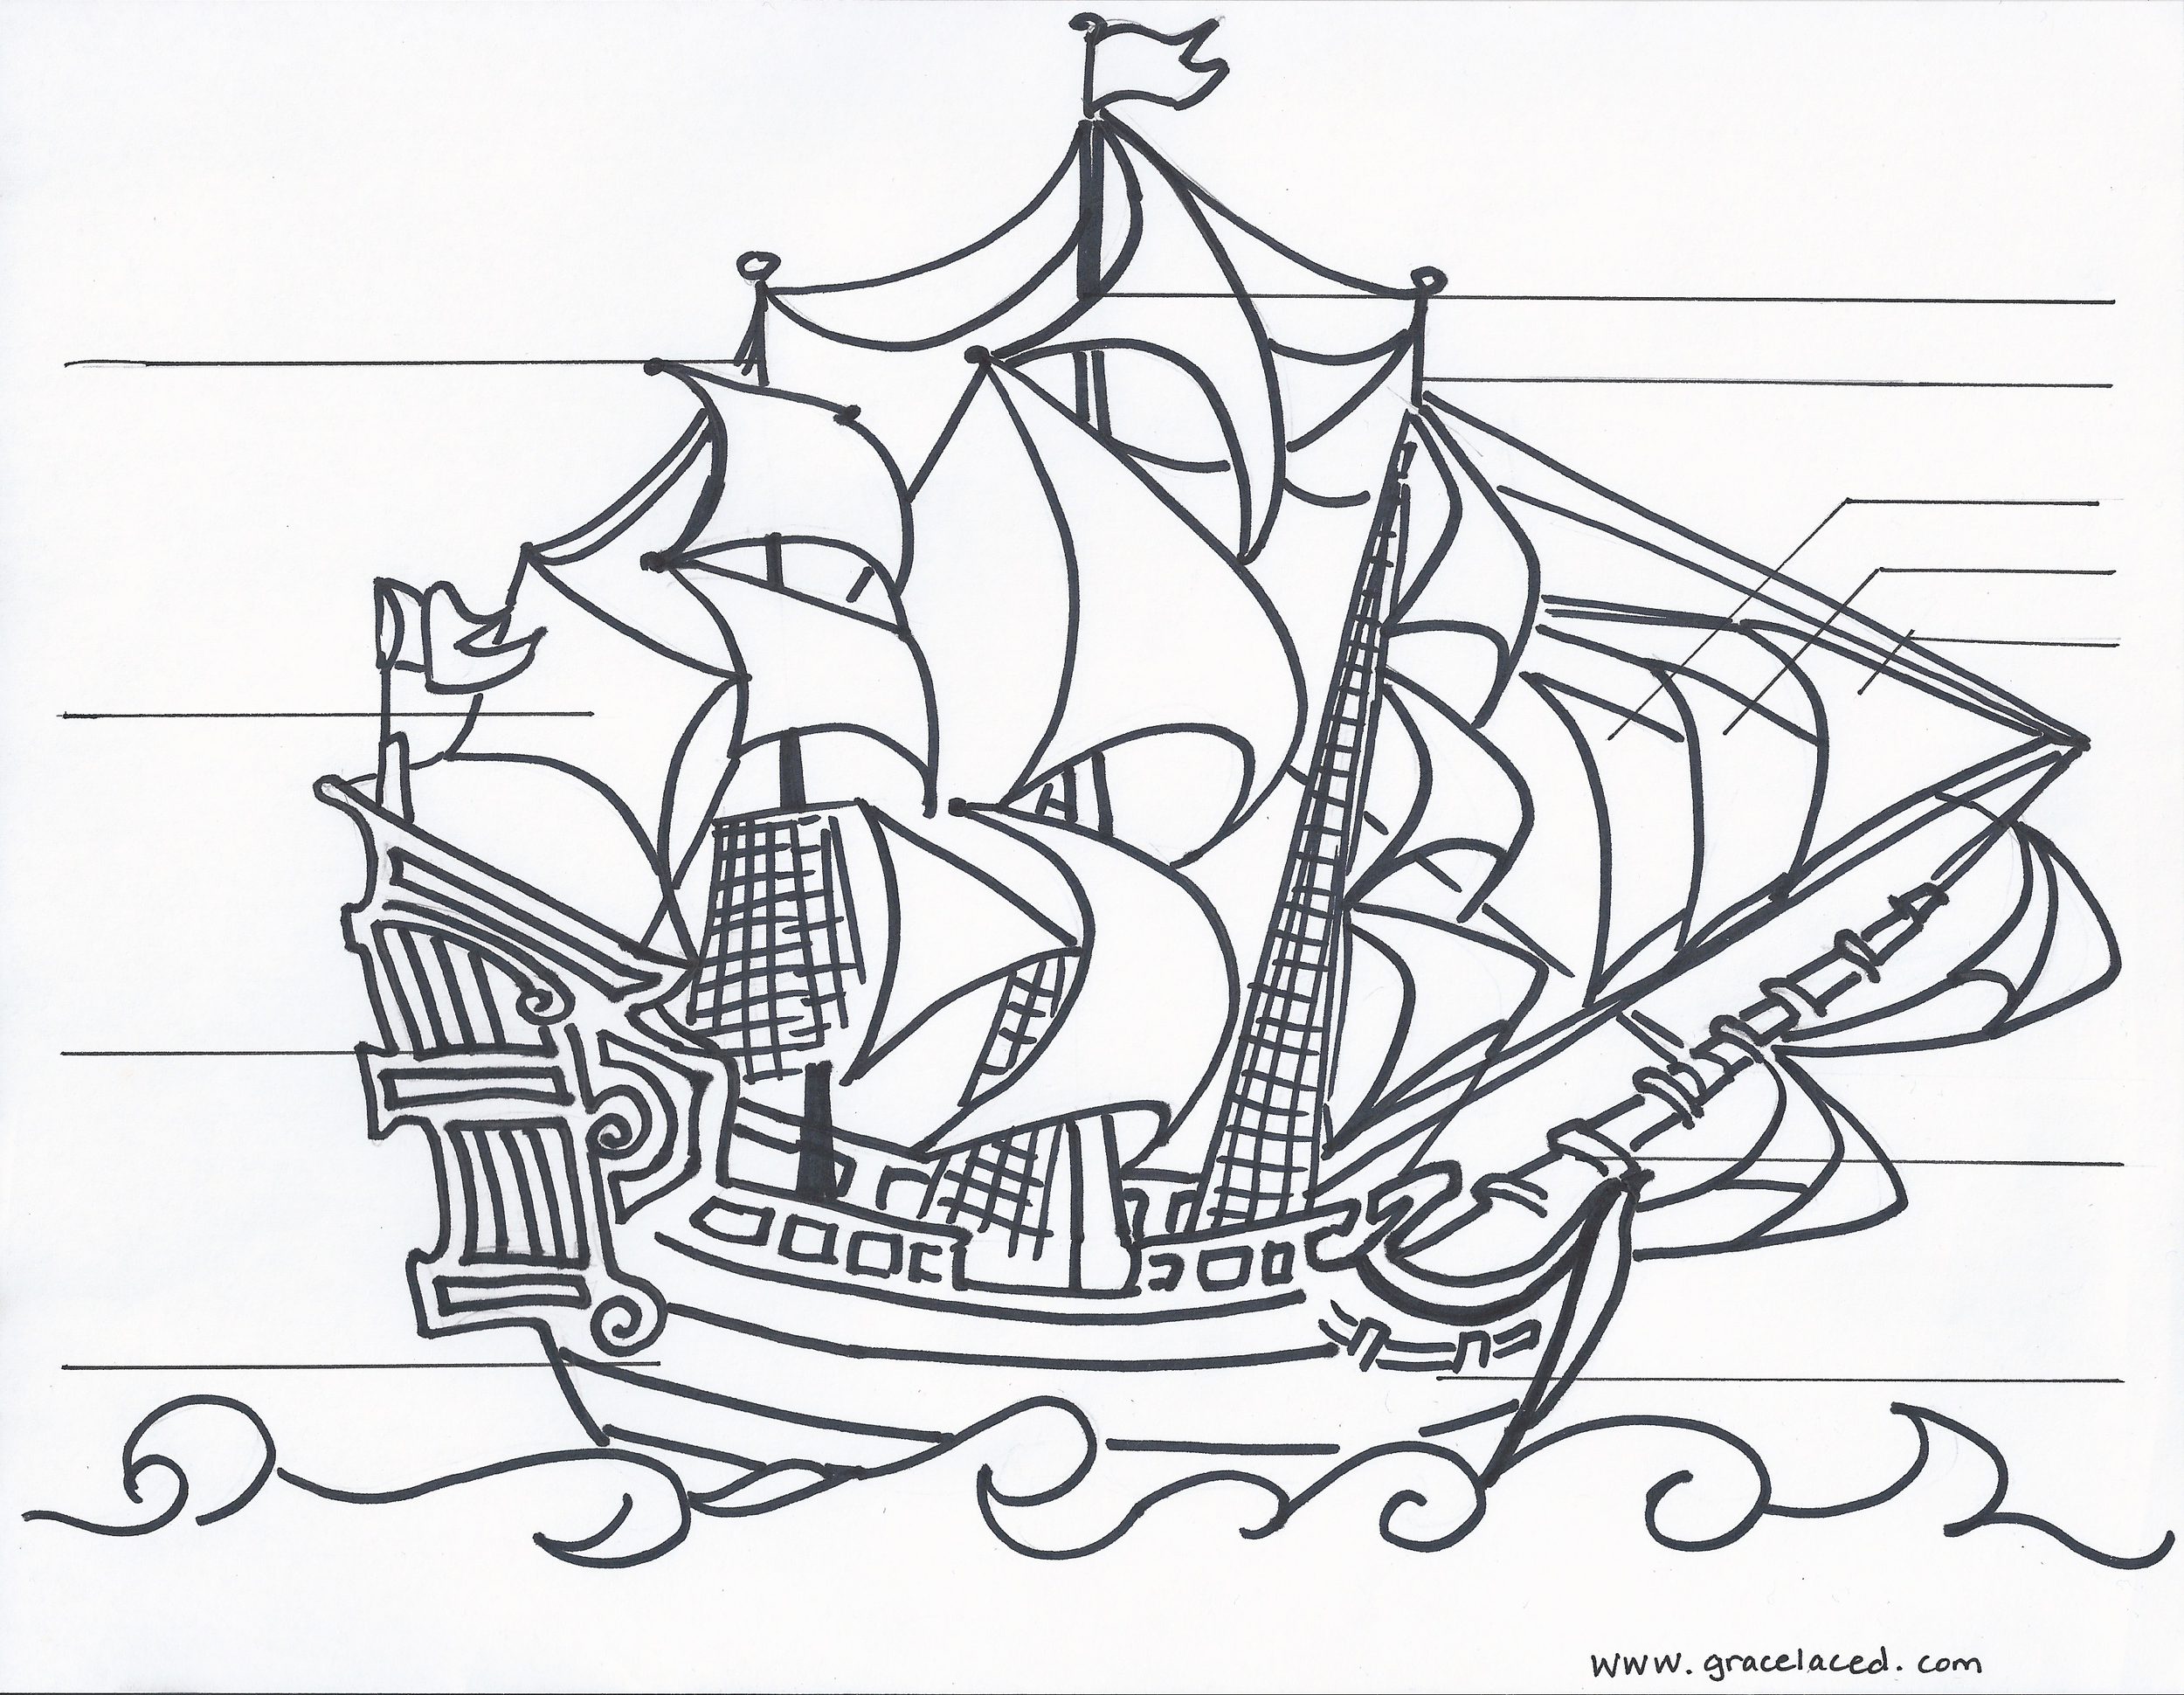 The Anatomy Of A Pirate Ship Coloring Sheet Free